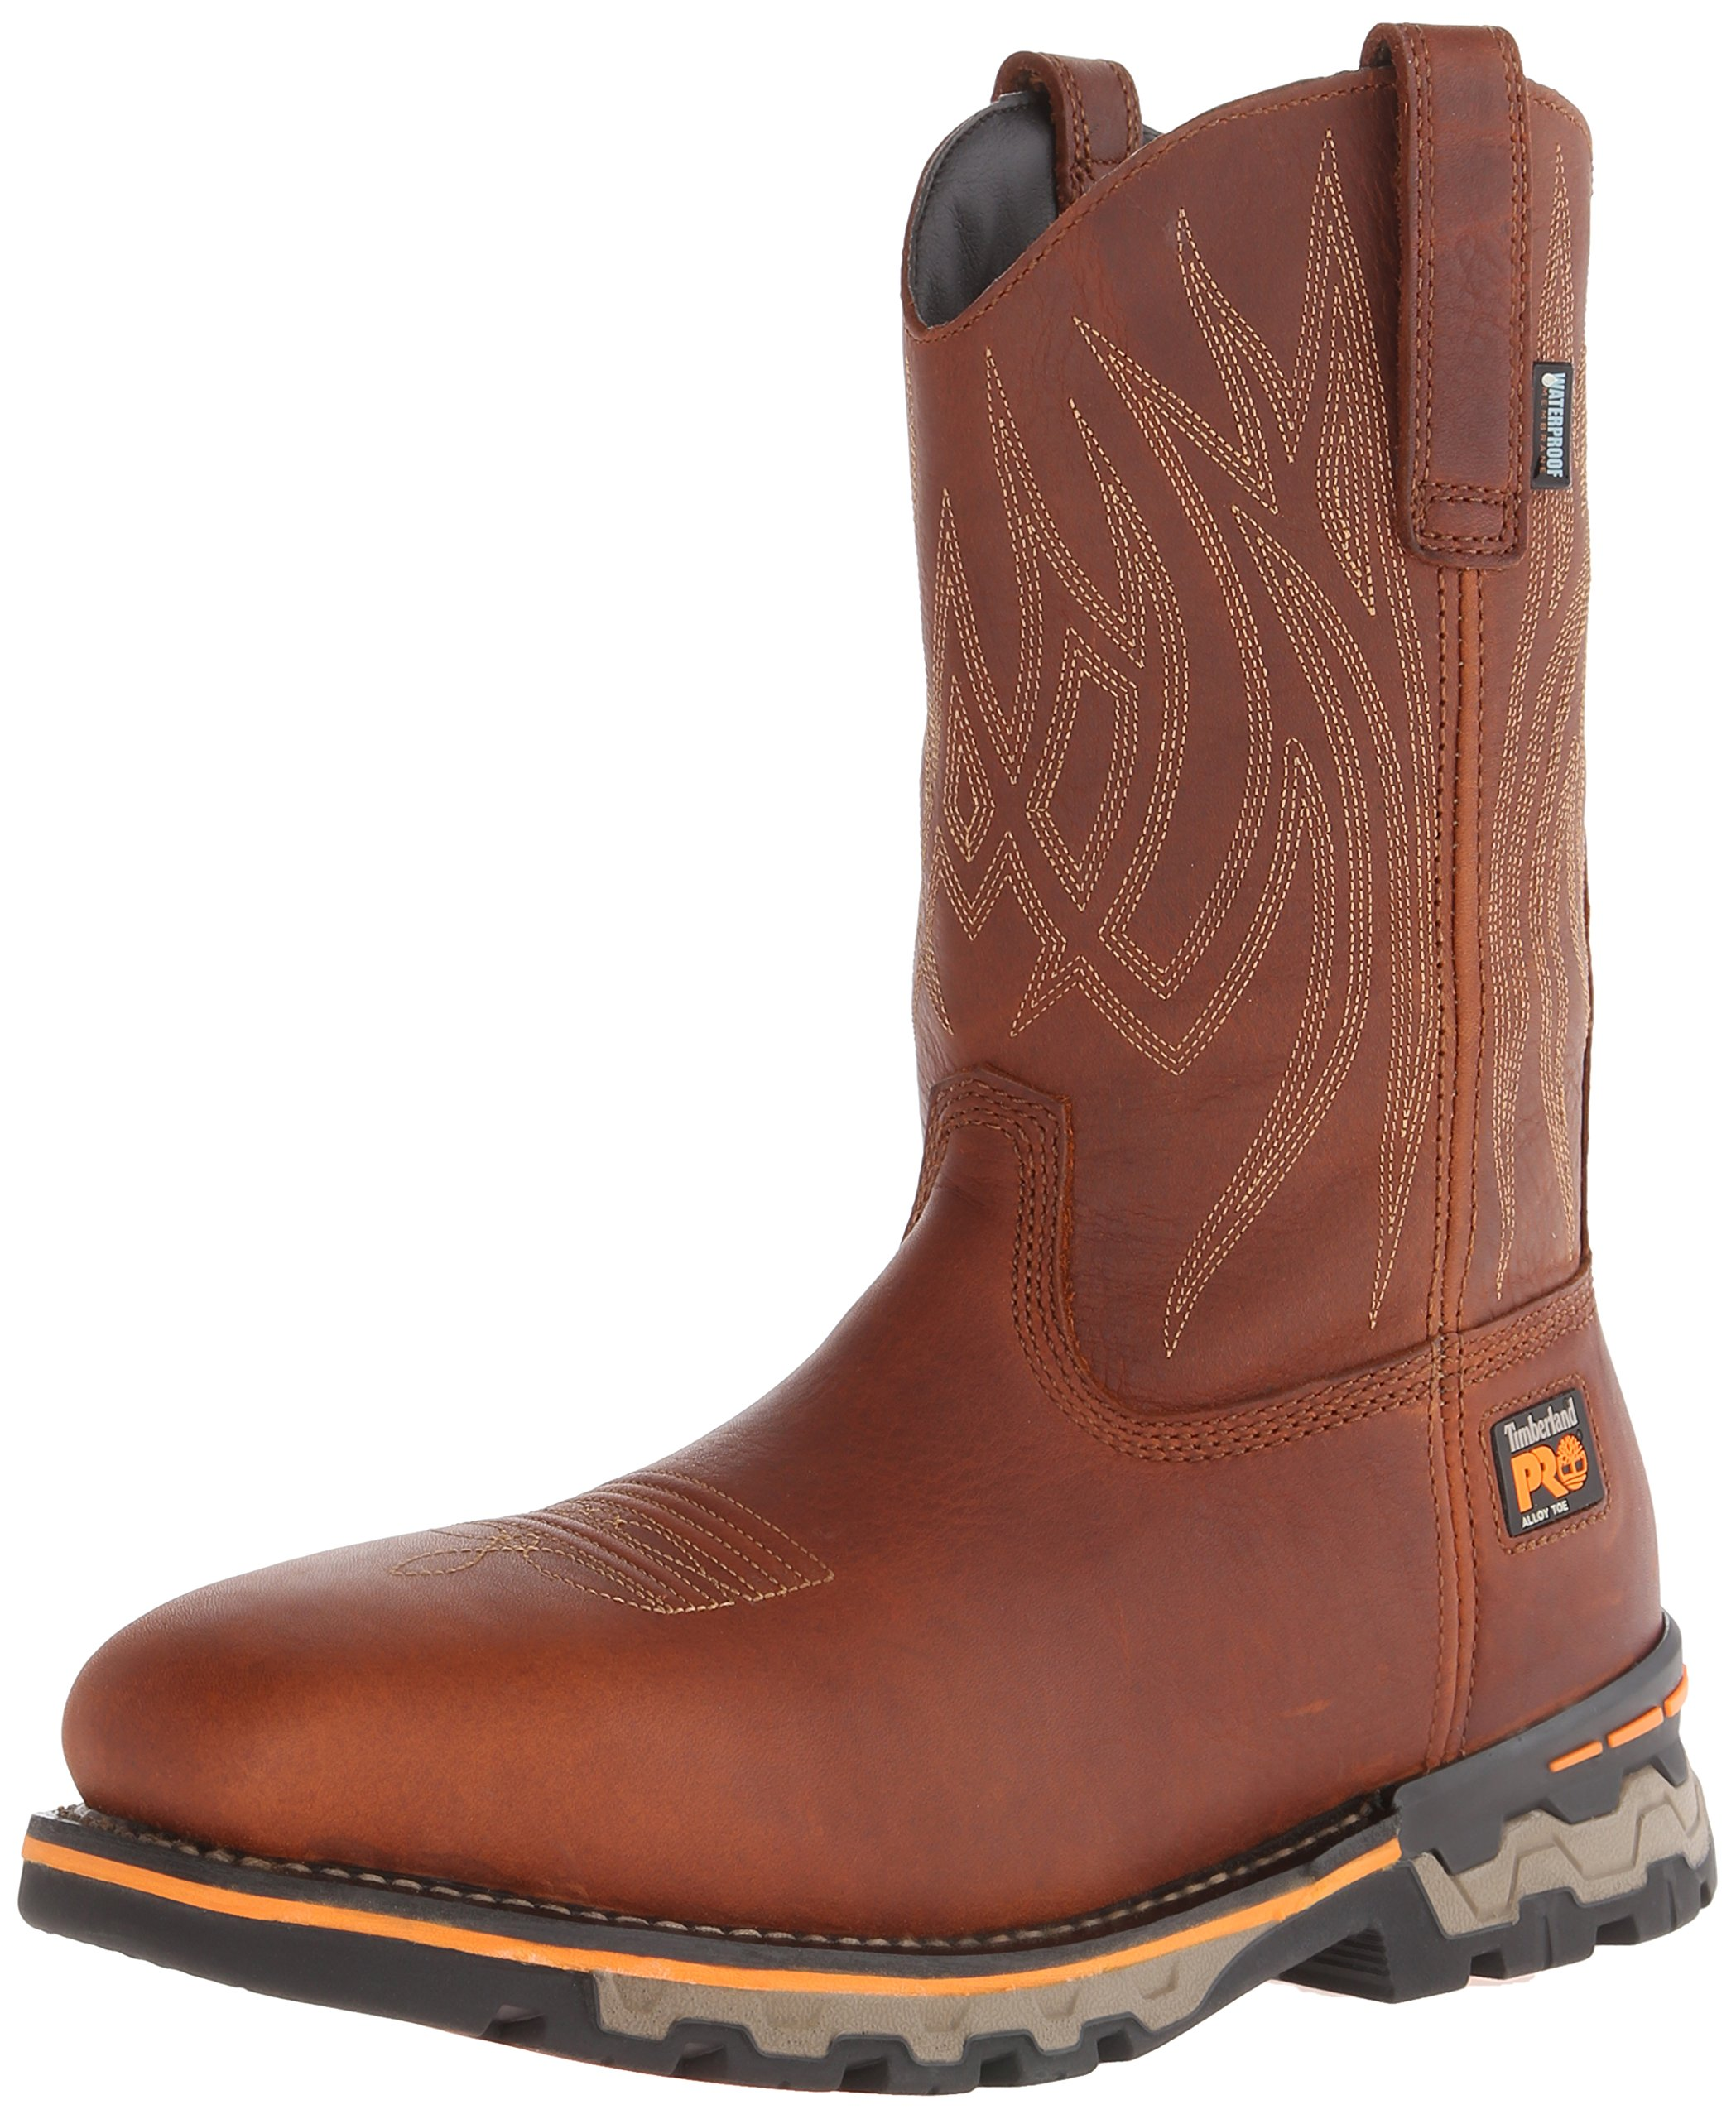 Timberland PRO Men's AG Boss Pull-On Alloy SQ Toe Work and Hunt Boot, Red/Brown Full Grain Leather, 7.5 W US by Timberland PRO